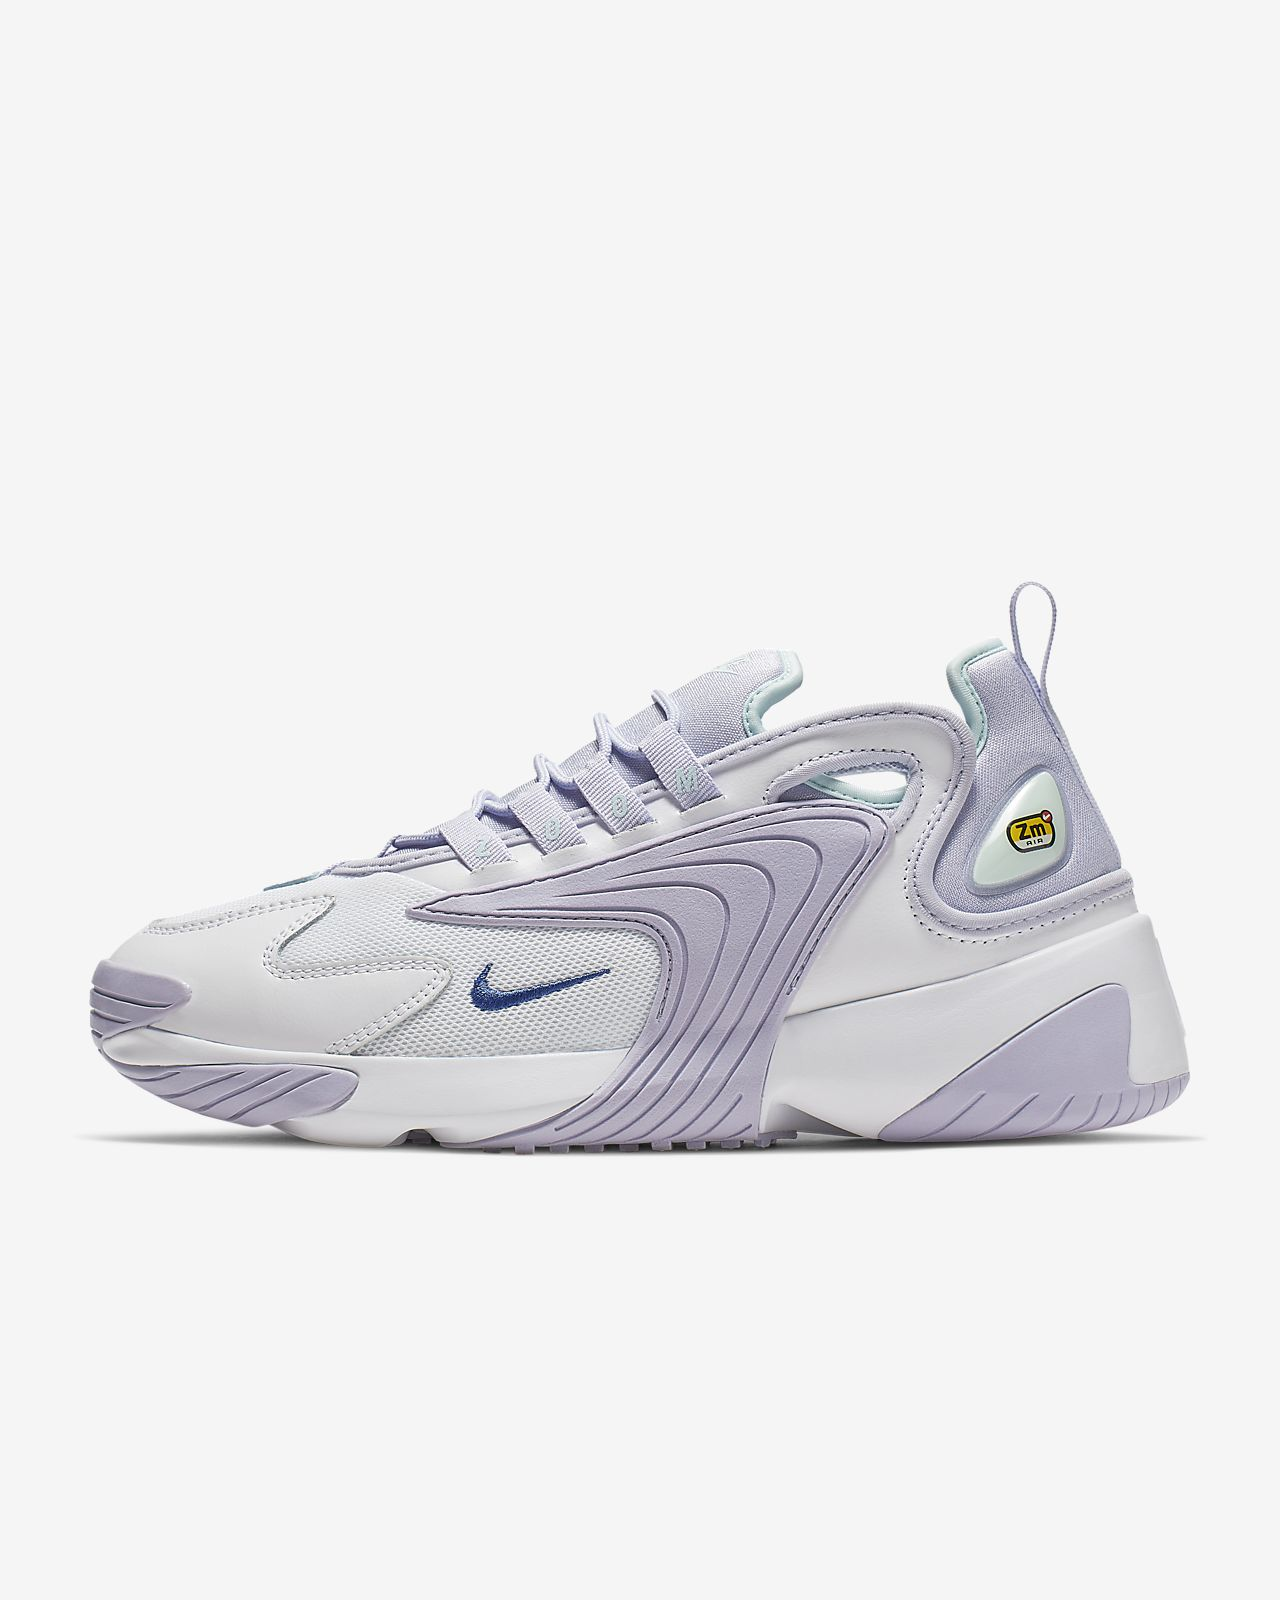 the best attitude 92bb3 7ecf9 ... Chaussure Nike Zoom 2K pour Femme